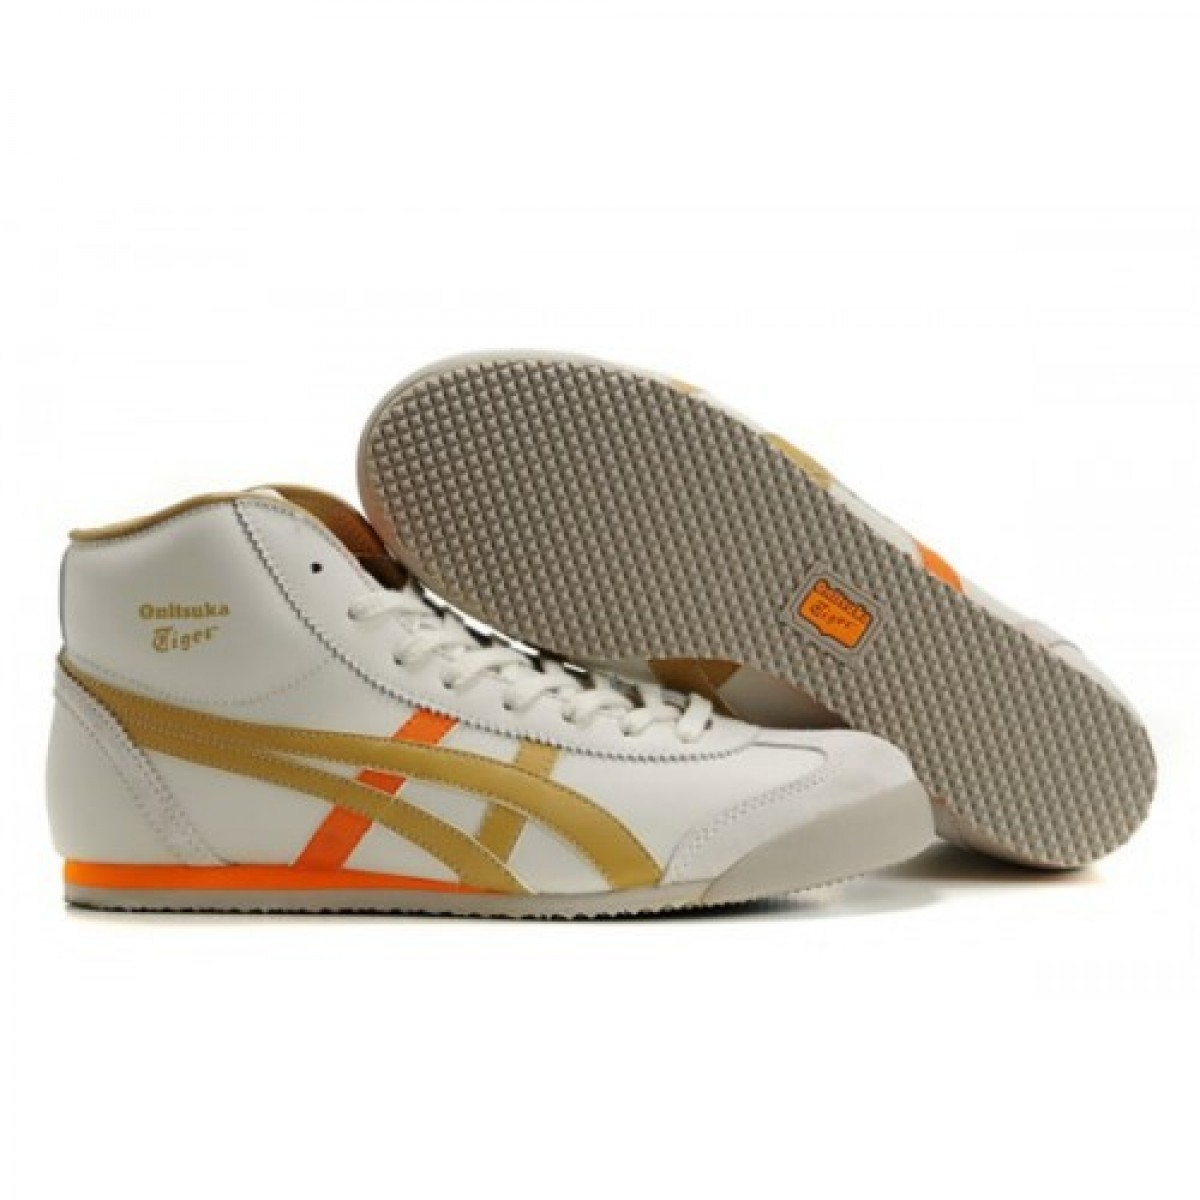 AX2530 Soldes Asics Mexico 66 Mid Runner Chaussures Blanc Orange Brown 80481559 Pas Cher